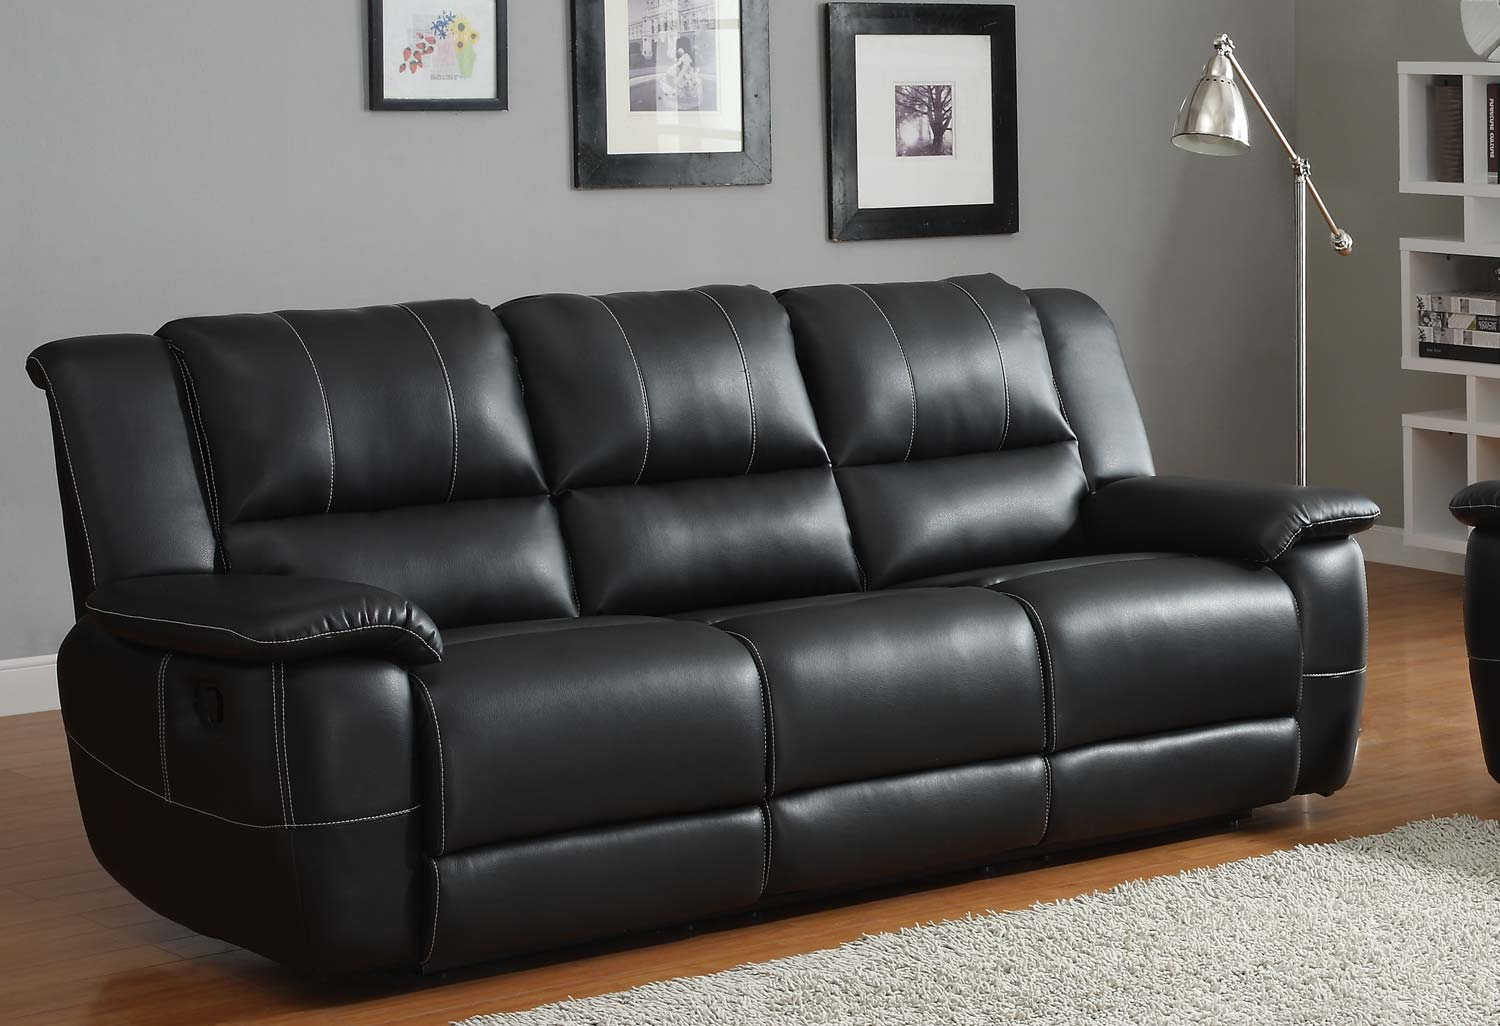 Homelegance cantrell reclining sofa set black bonded leather match u9778blk 3 Leather loveseat recliners